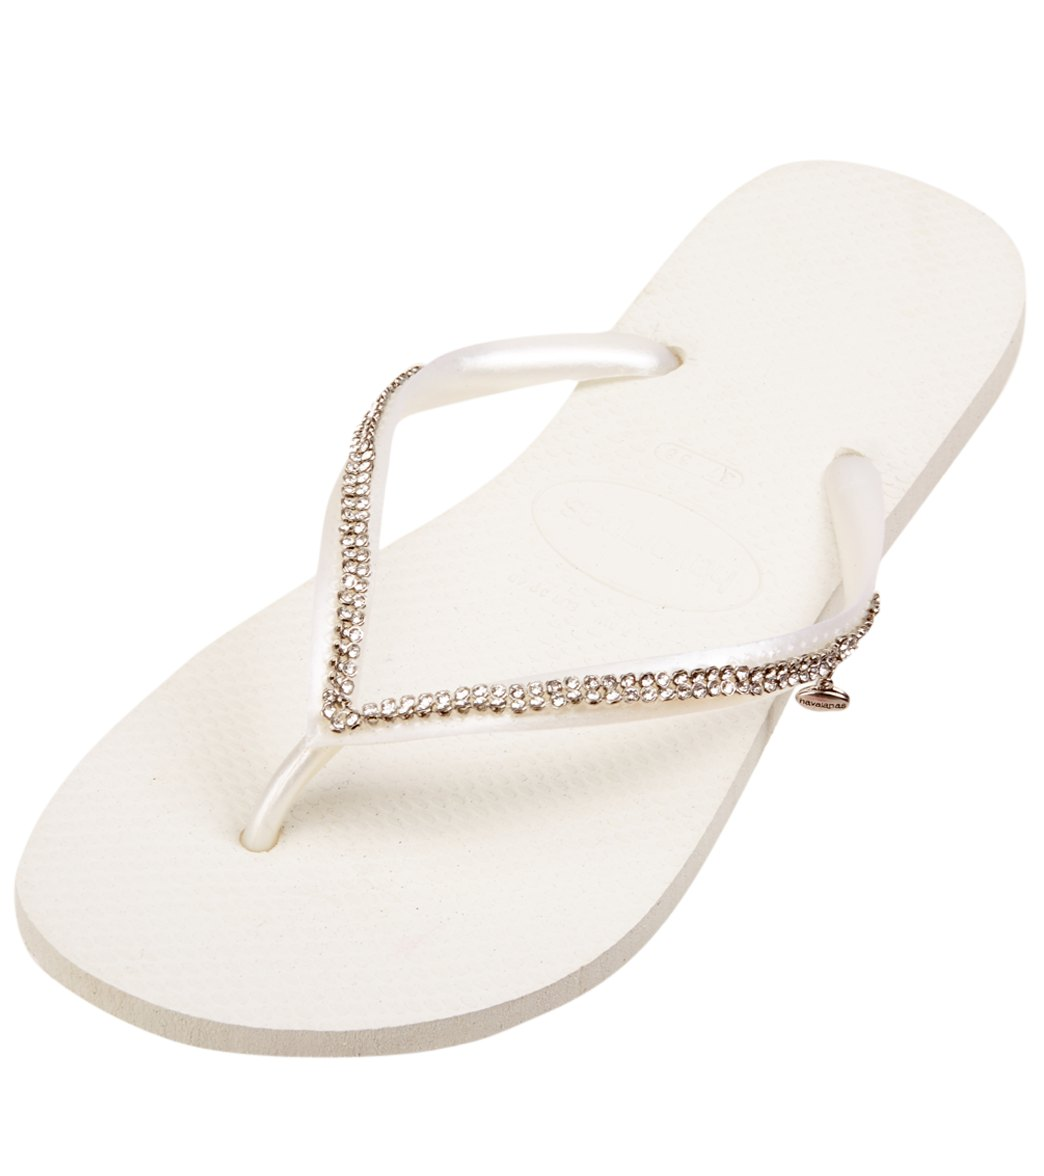 7e9ded8ec7f937 Havaianas Women s Special Collection Slim Crystal Mesh Sandal at  SwimOutlet.com - Free Shipping